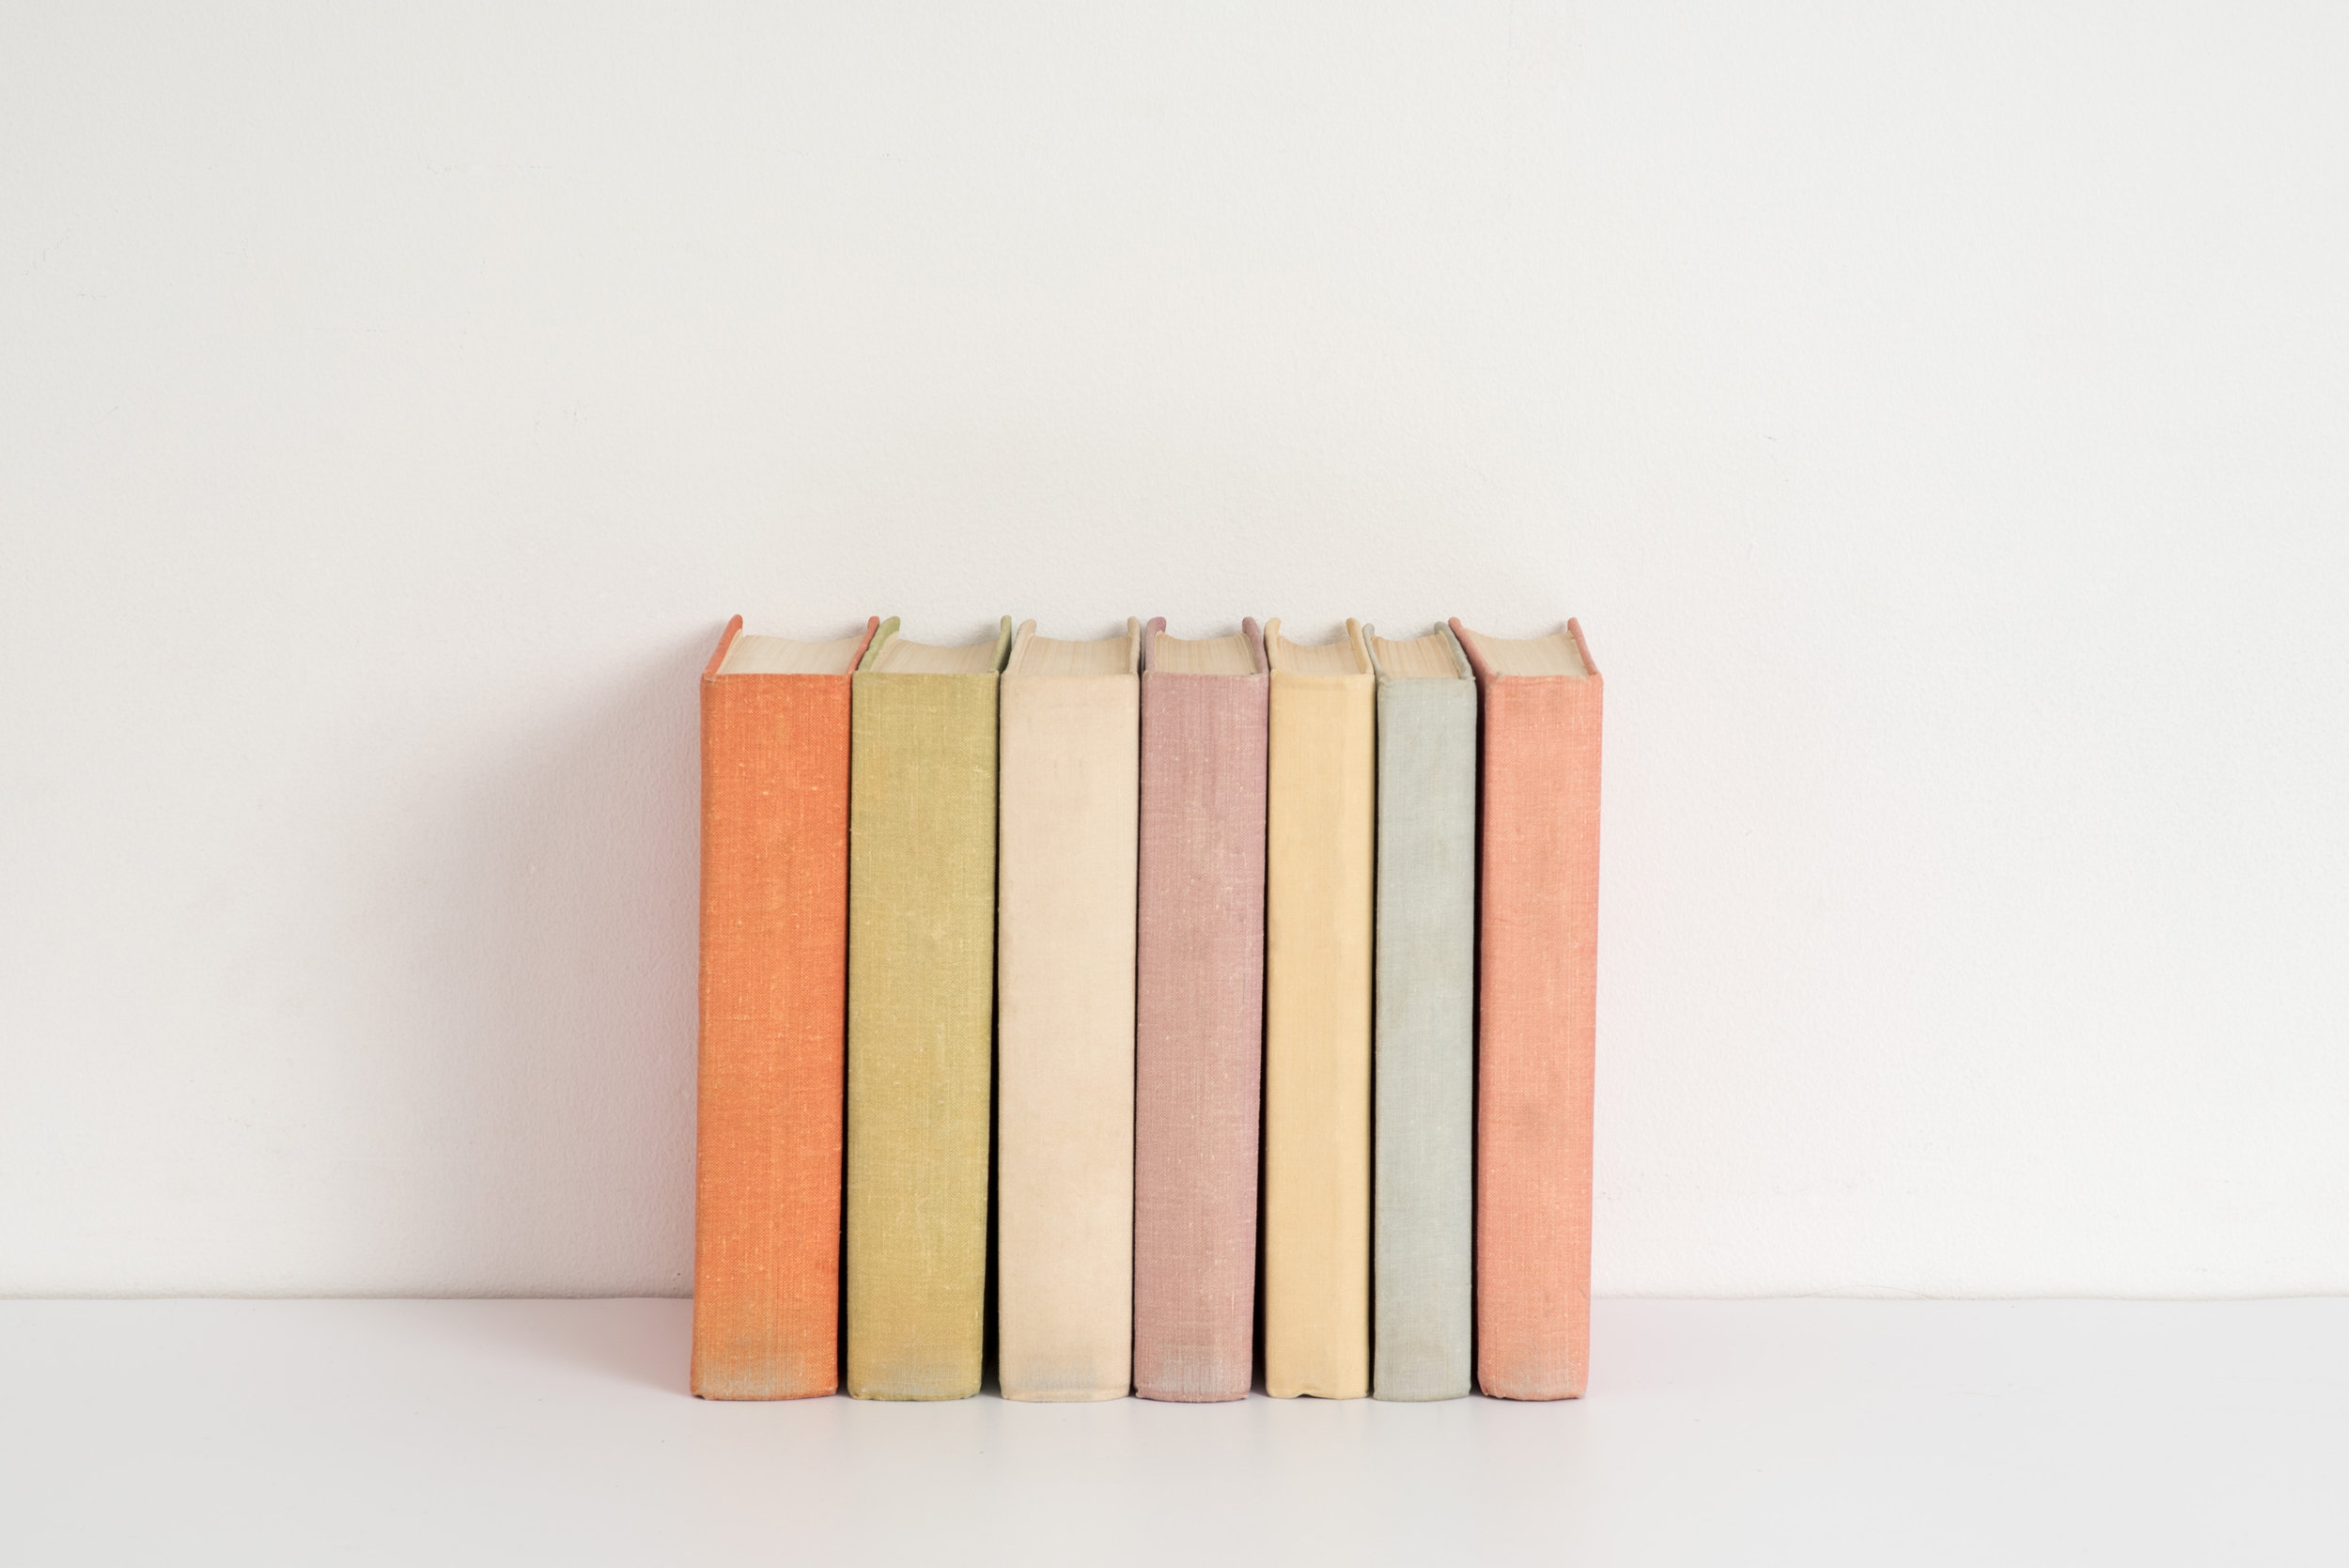 colorful-hardback-books-on-the-shelf-2.jpg